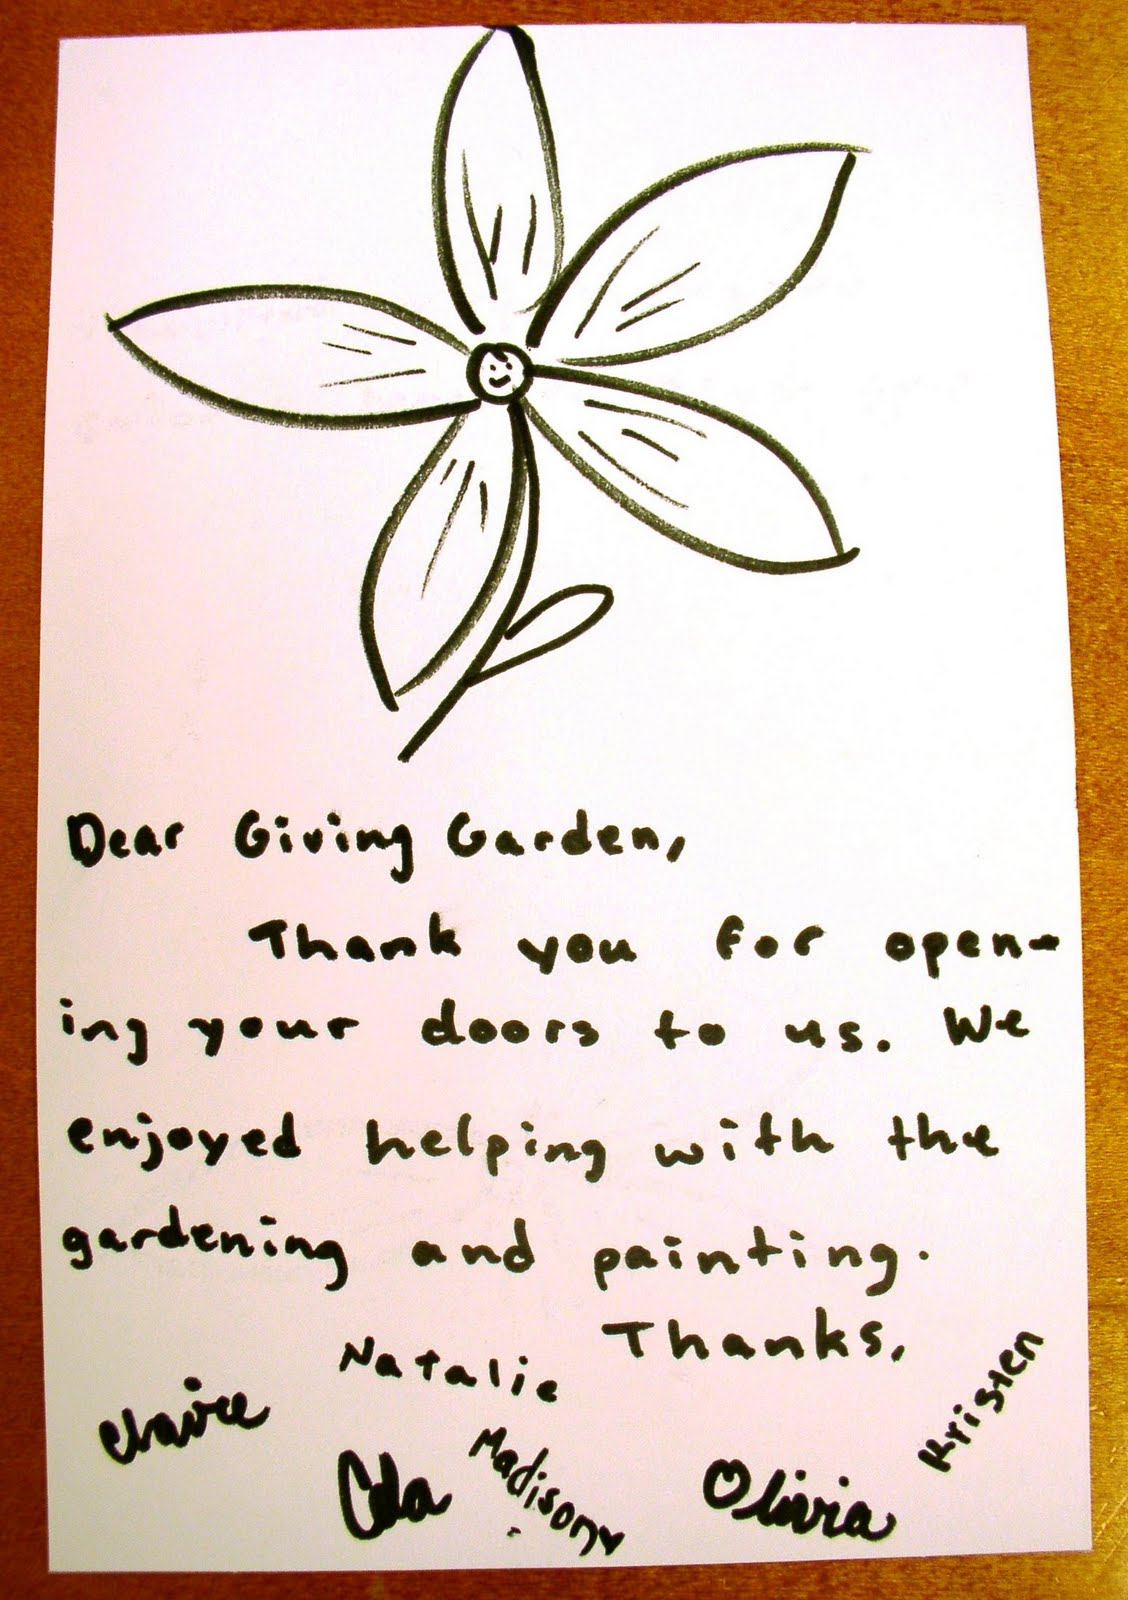 rcs giving garden thank you card from the summer stretch students thank you card from the summer stretch students